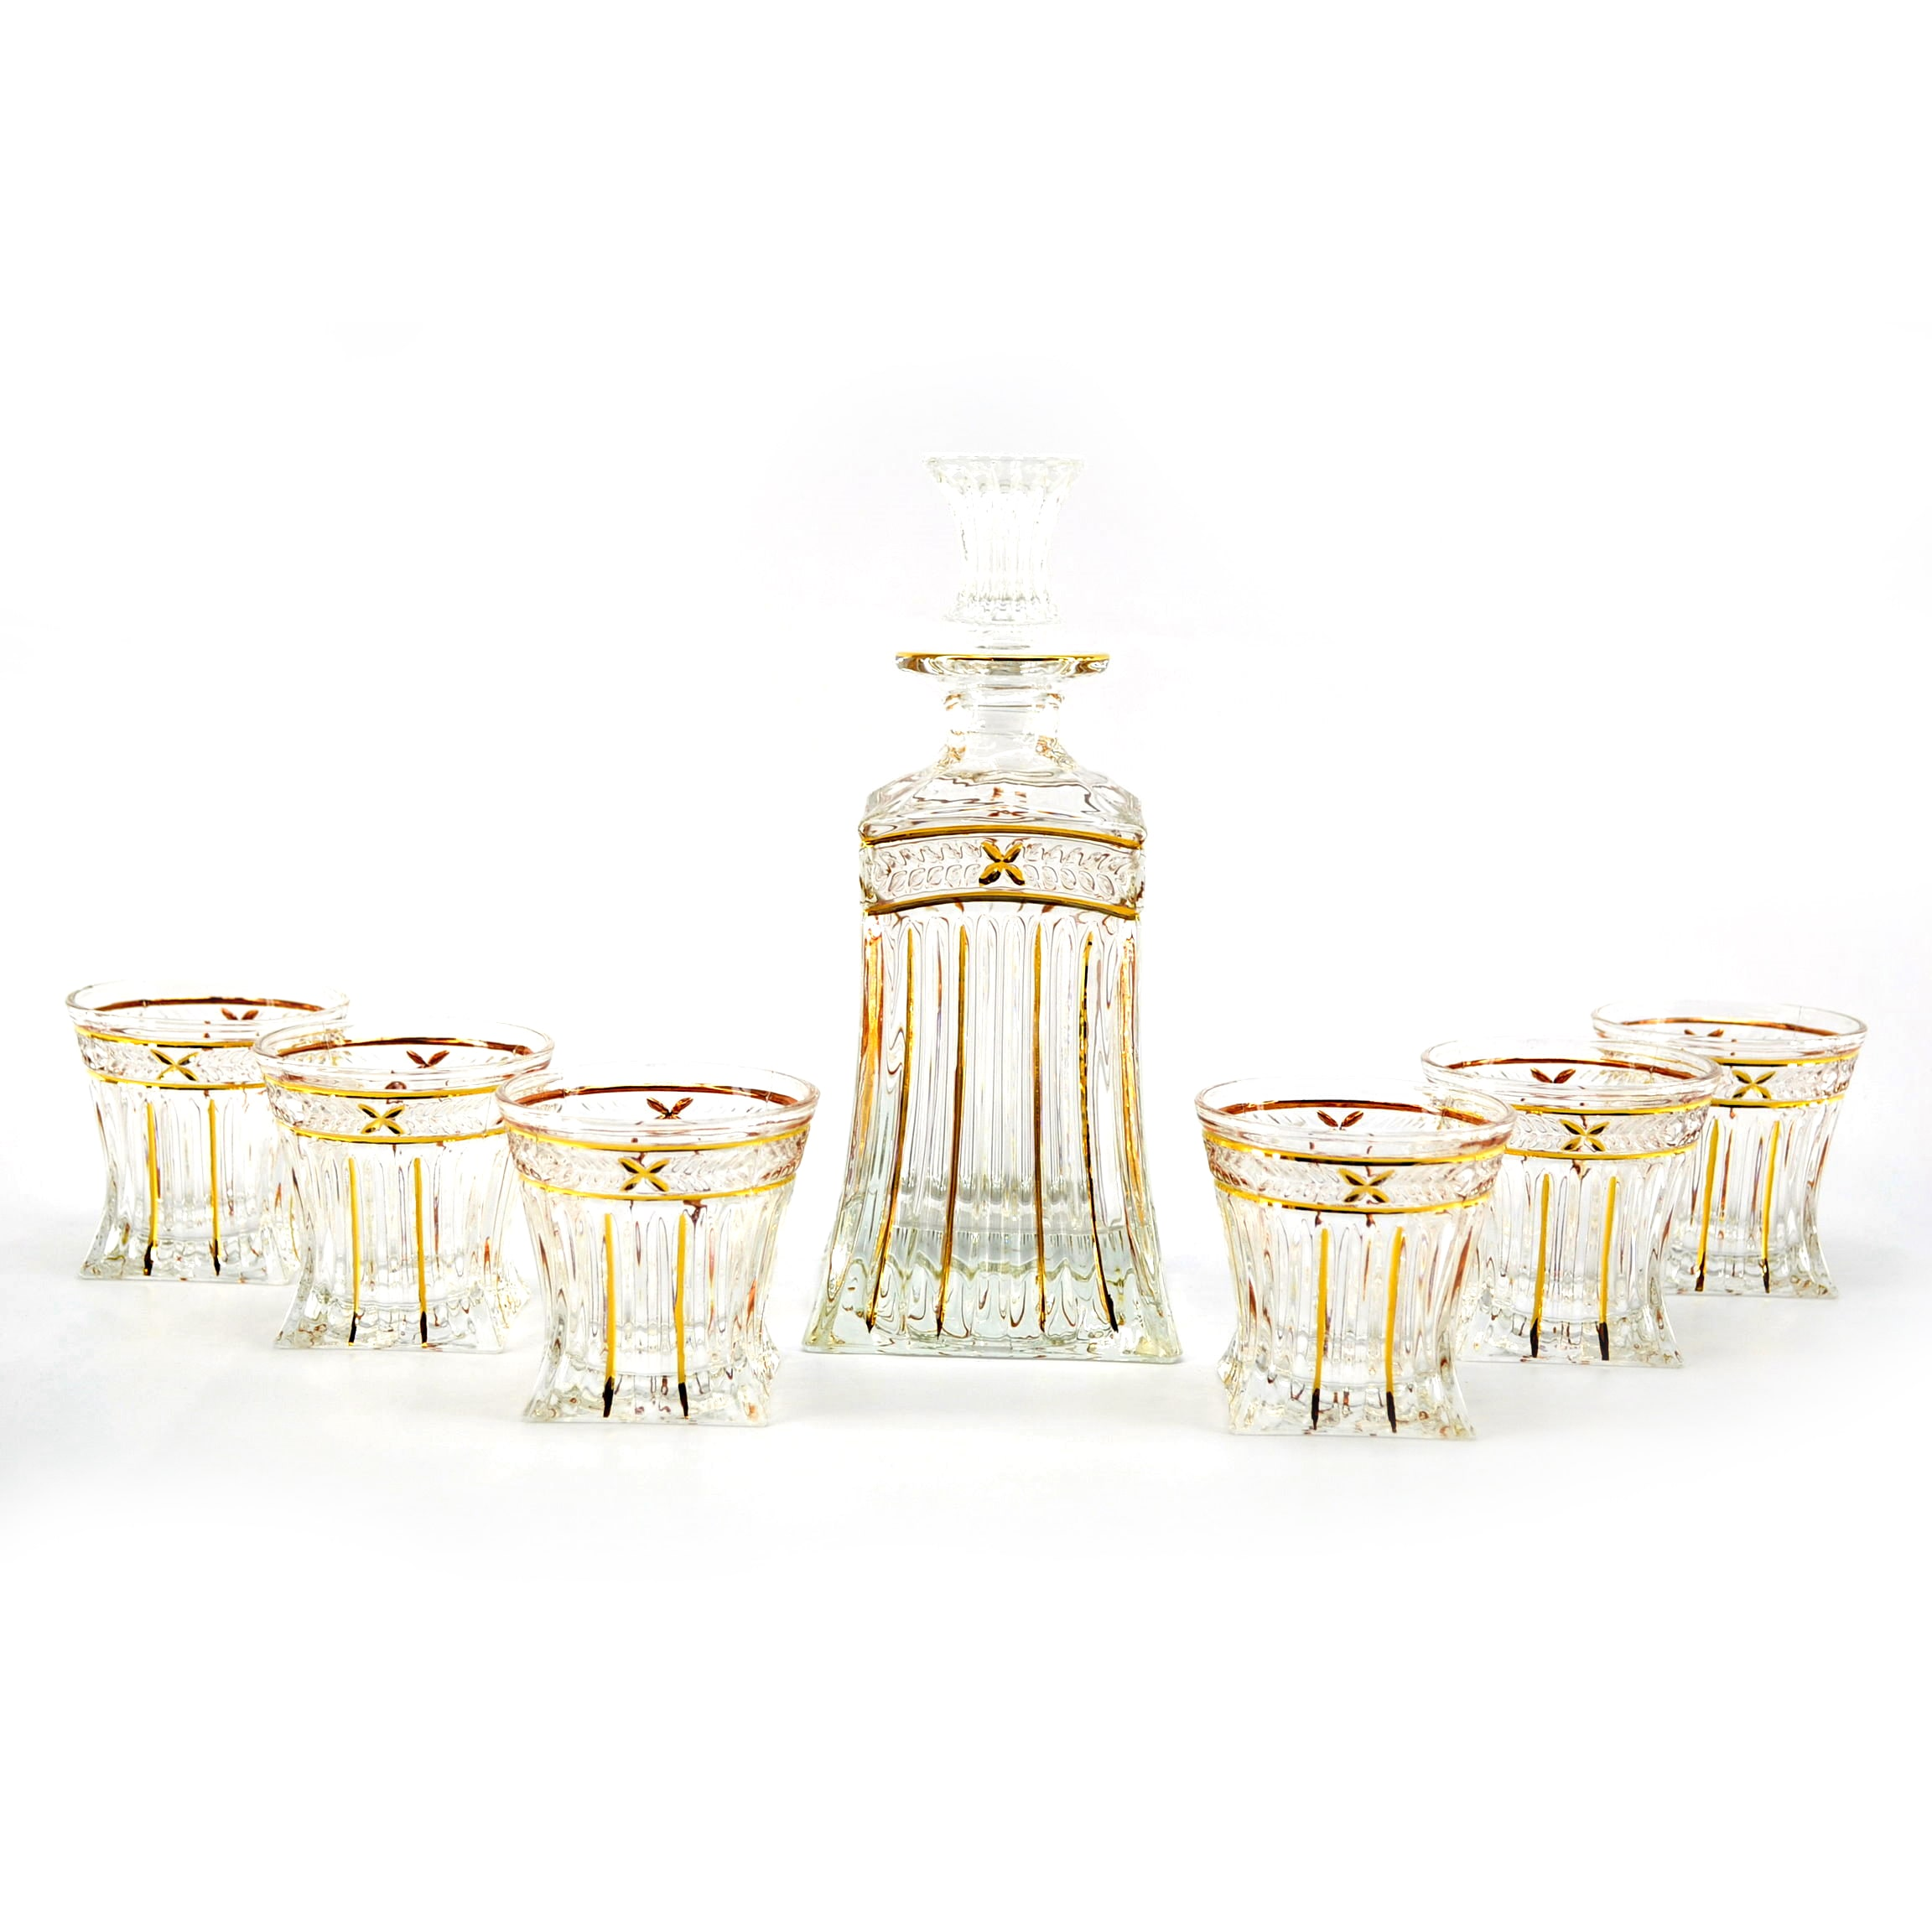 3starimex Seven-Piece Clear Glass Bottle and Shot Glass Liquor Set by Overstock